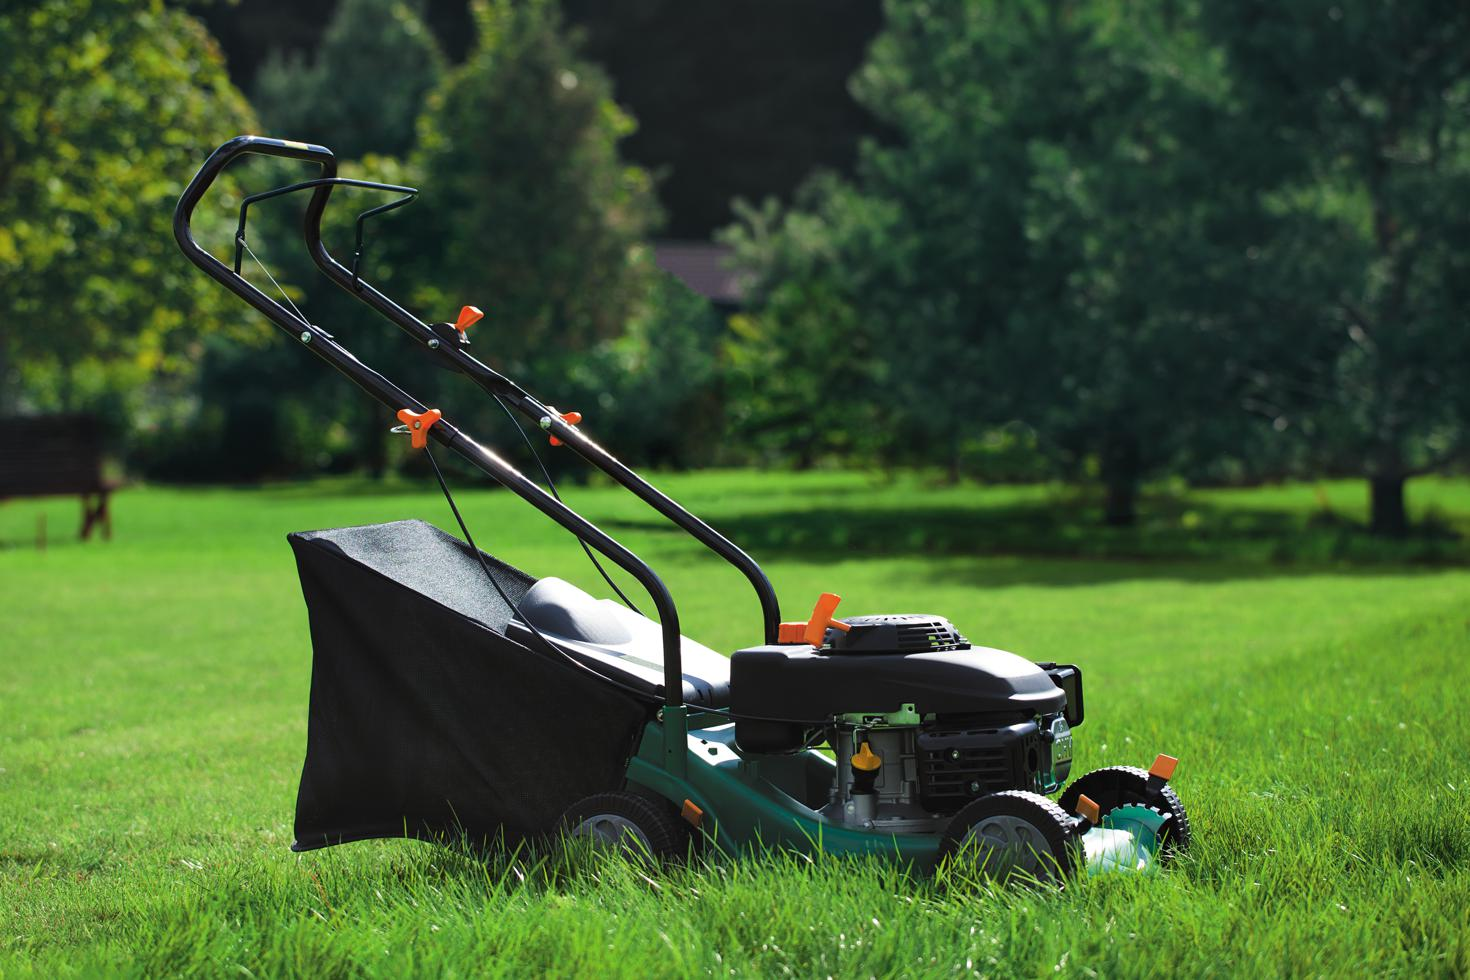 Storing a lawn mower at Affordable Family Storage